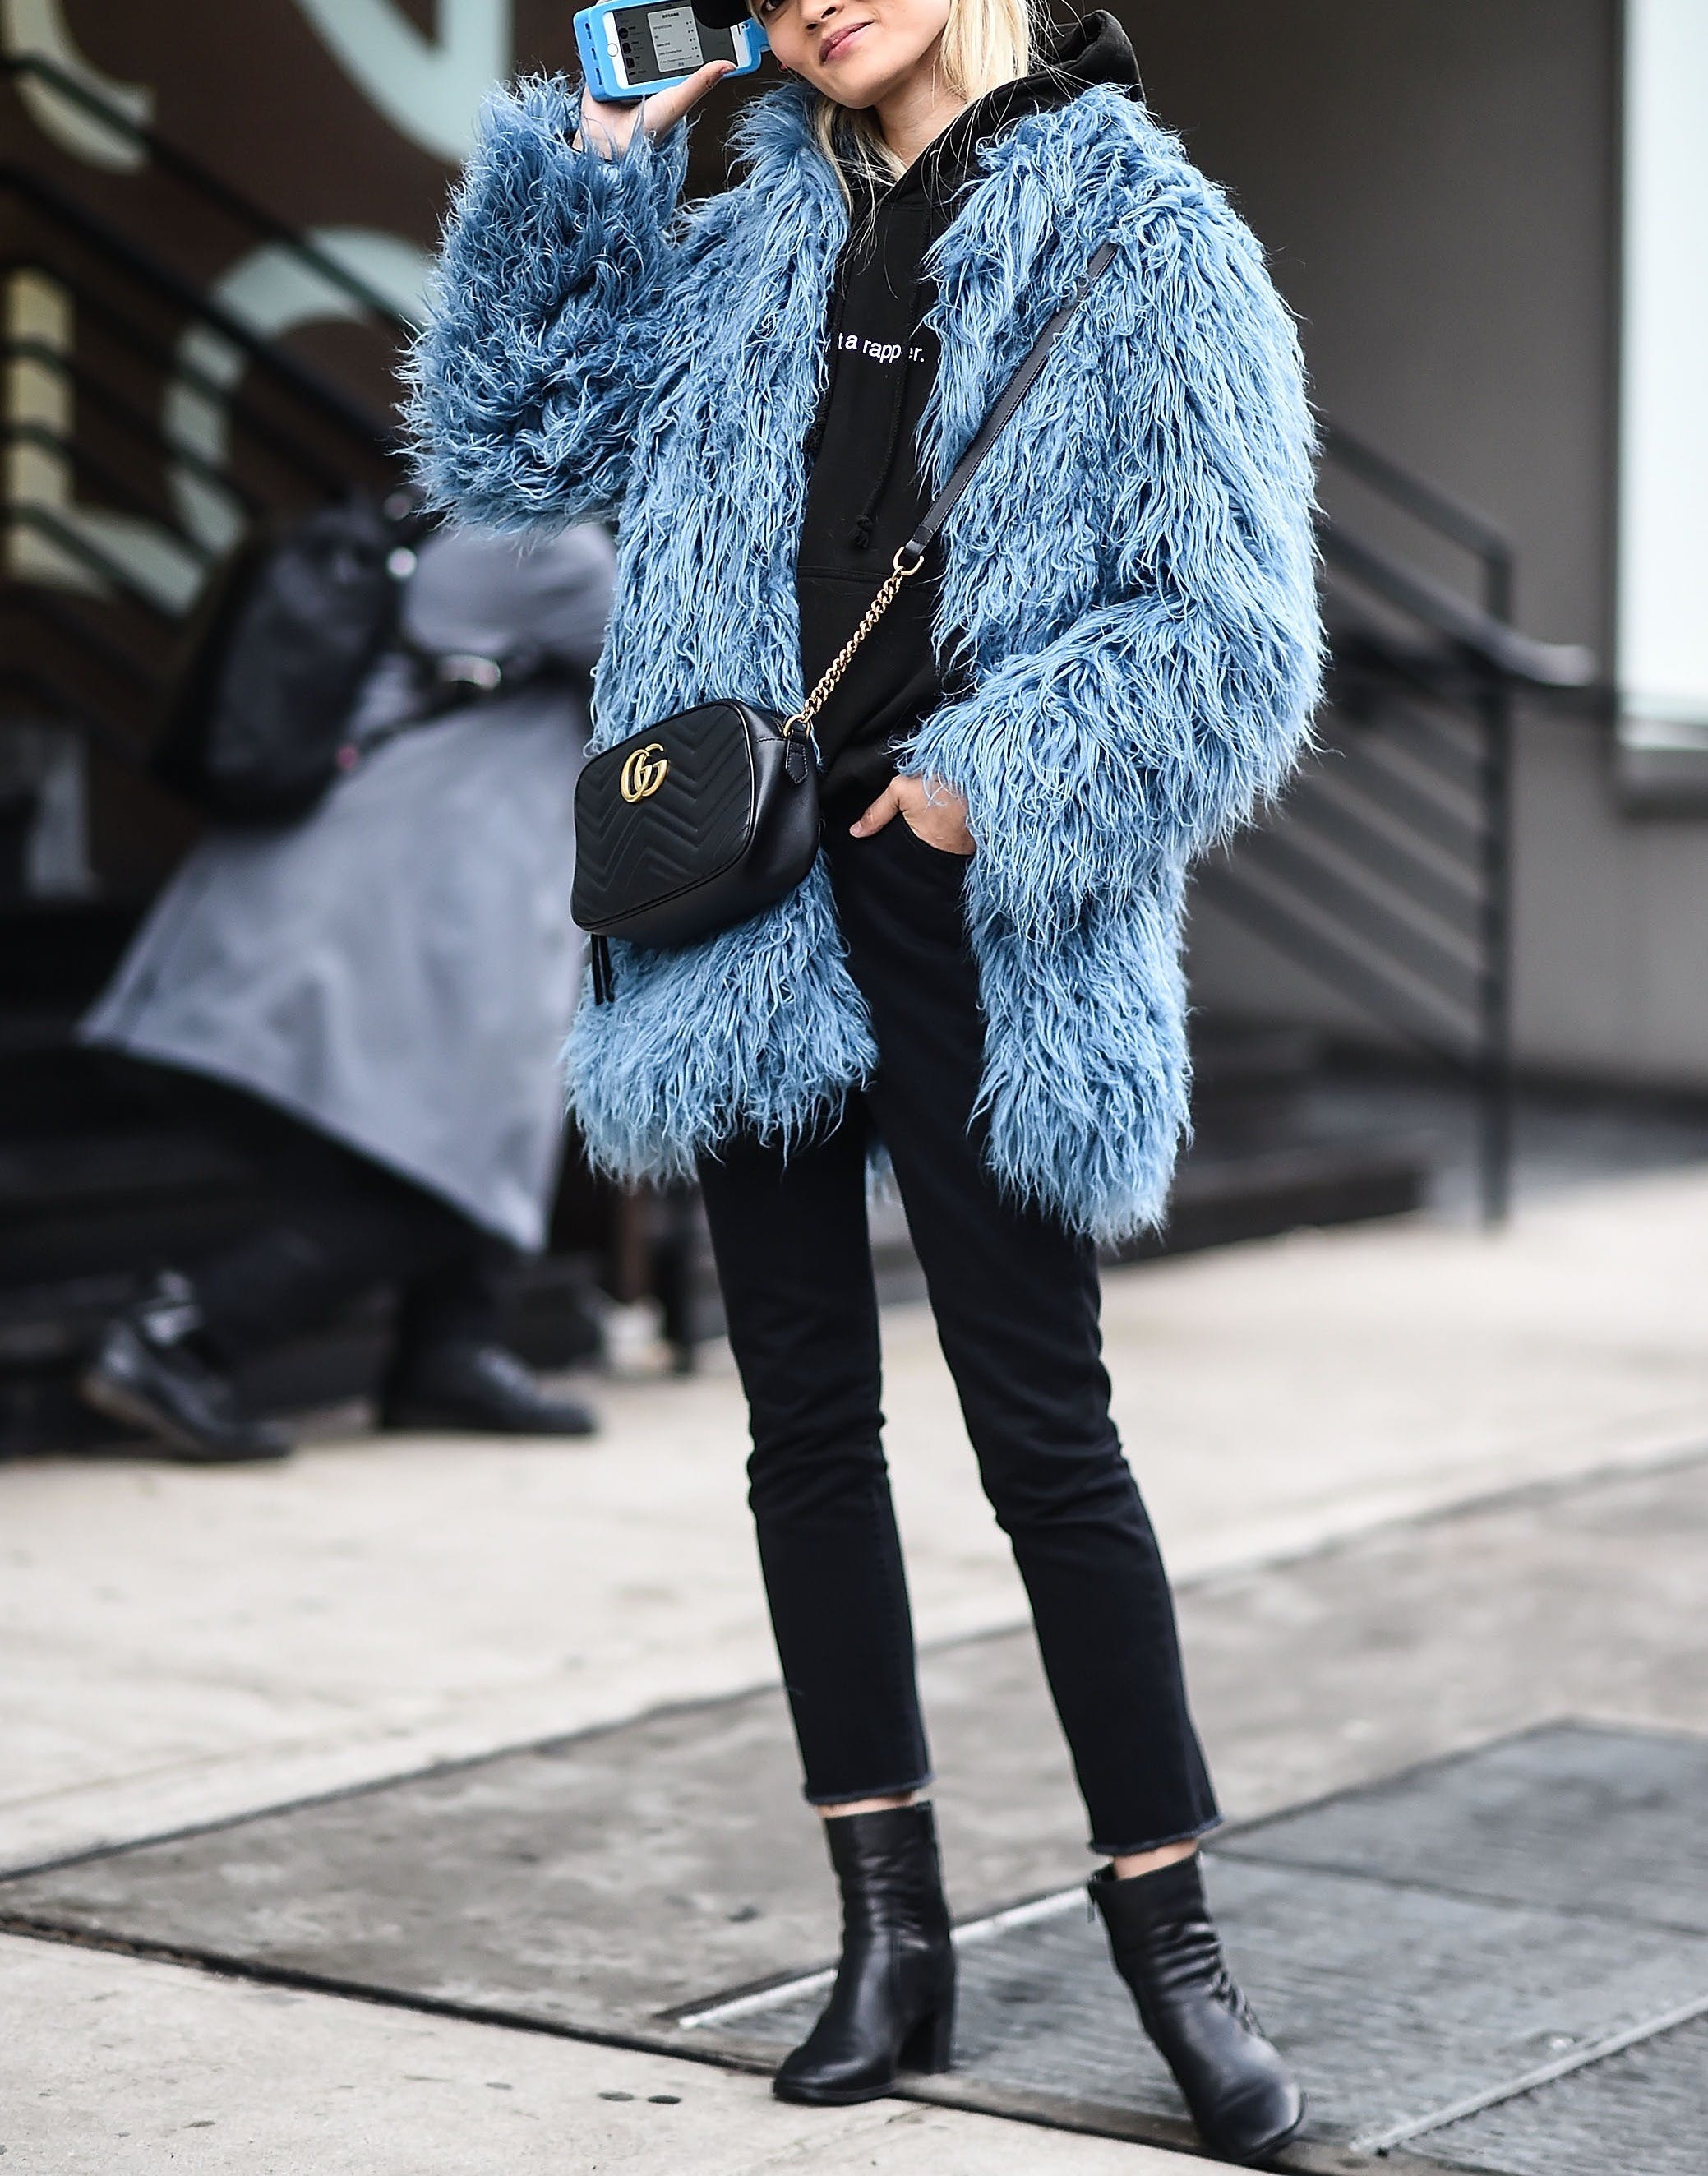 fur jacket sweatshirt ankle boots